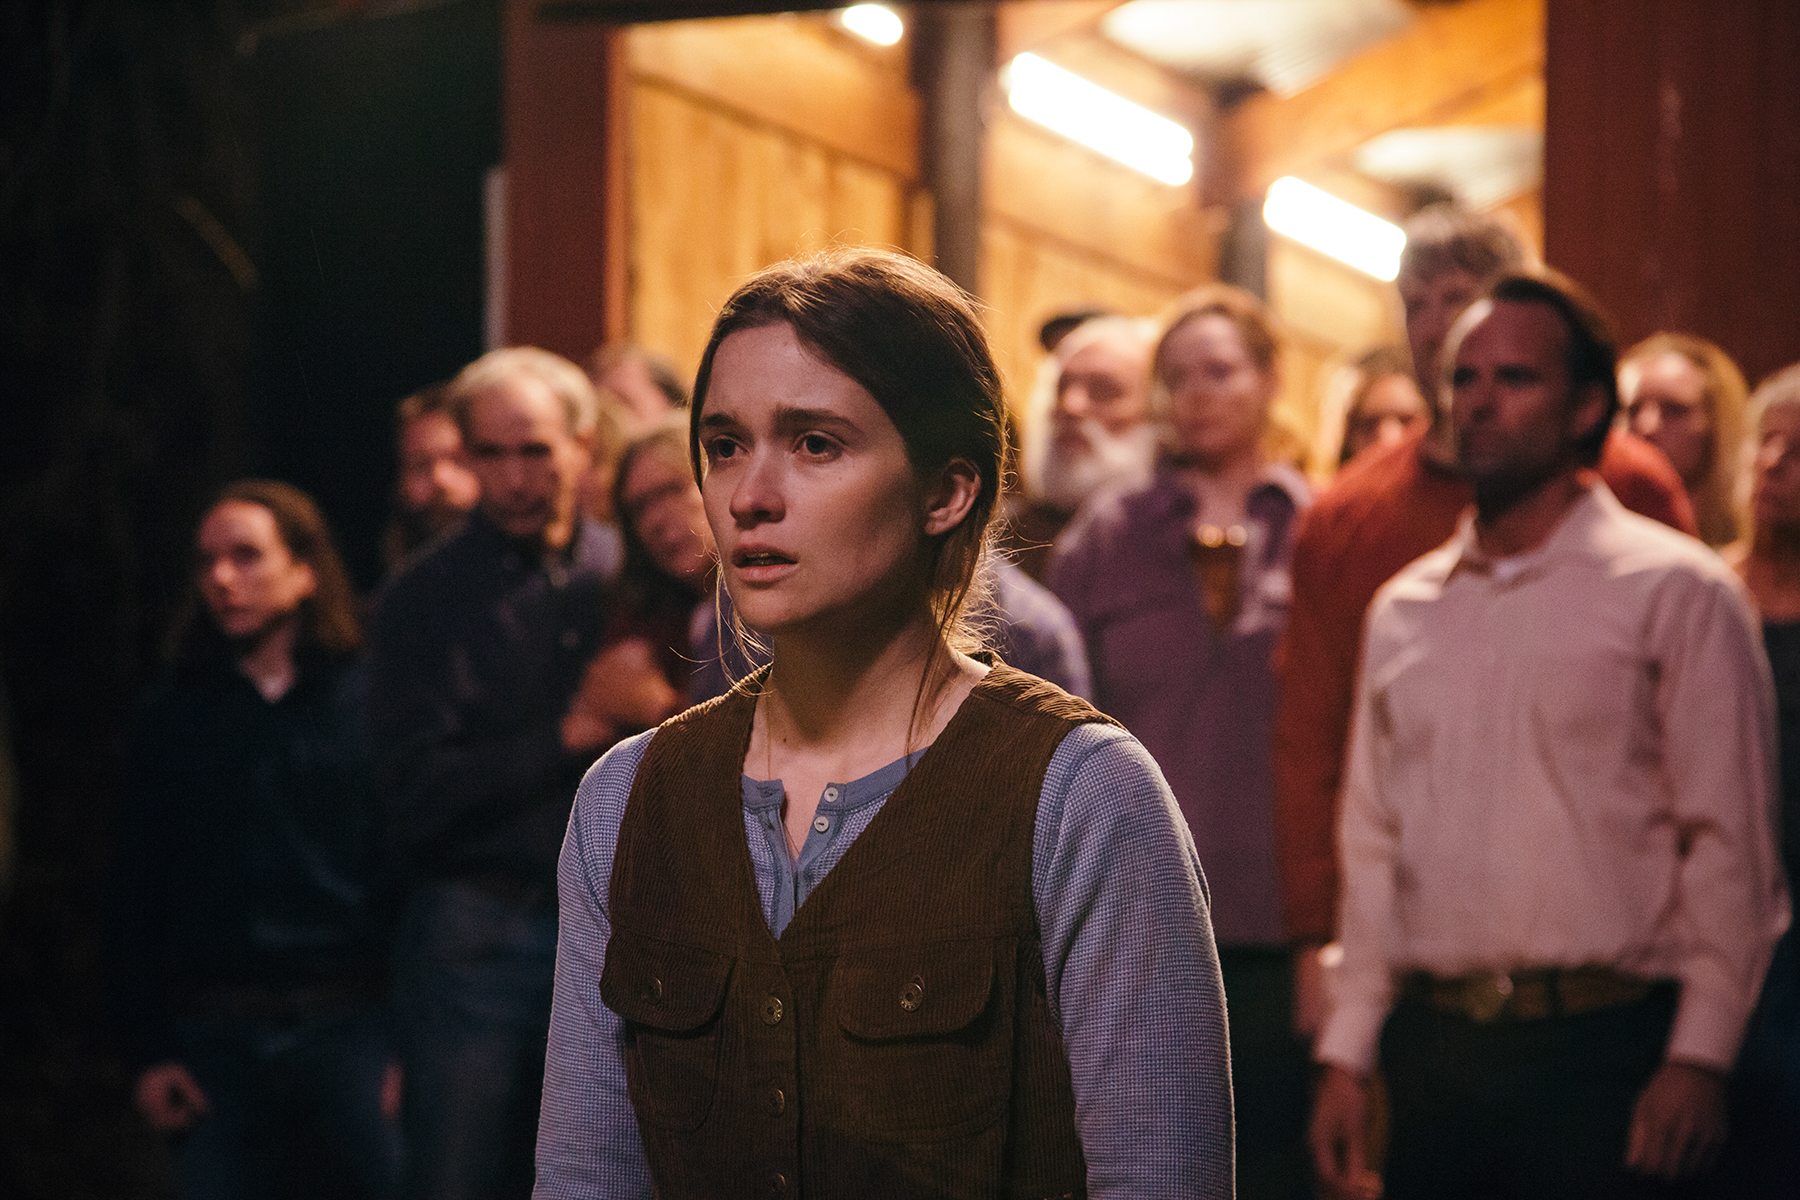 """Alice Englert, center, plays Maura, dutiful daughter of Lemuel (Walton Goggins, right), the pastor in a church that believes in snake handling, in """"Them That Follow,"""" an official selection in the U.S. Dramatic Competition of the 2019 Sundance Film Festival. (Photo by Julius Chiu, courtesy Sundance Institute)"""